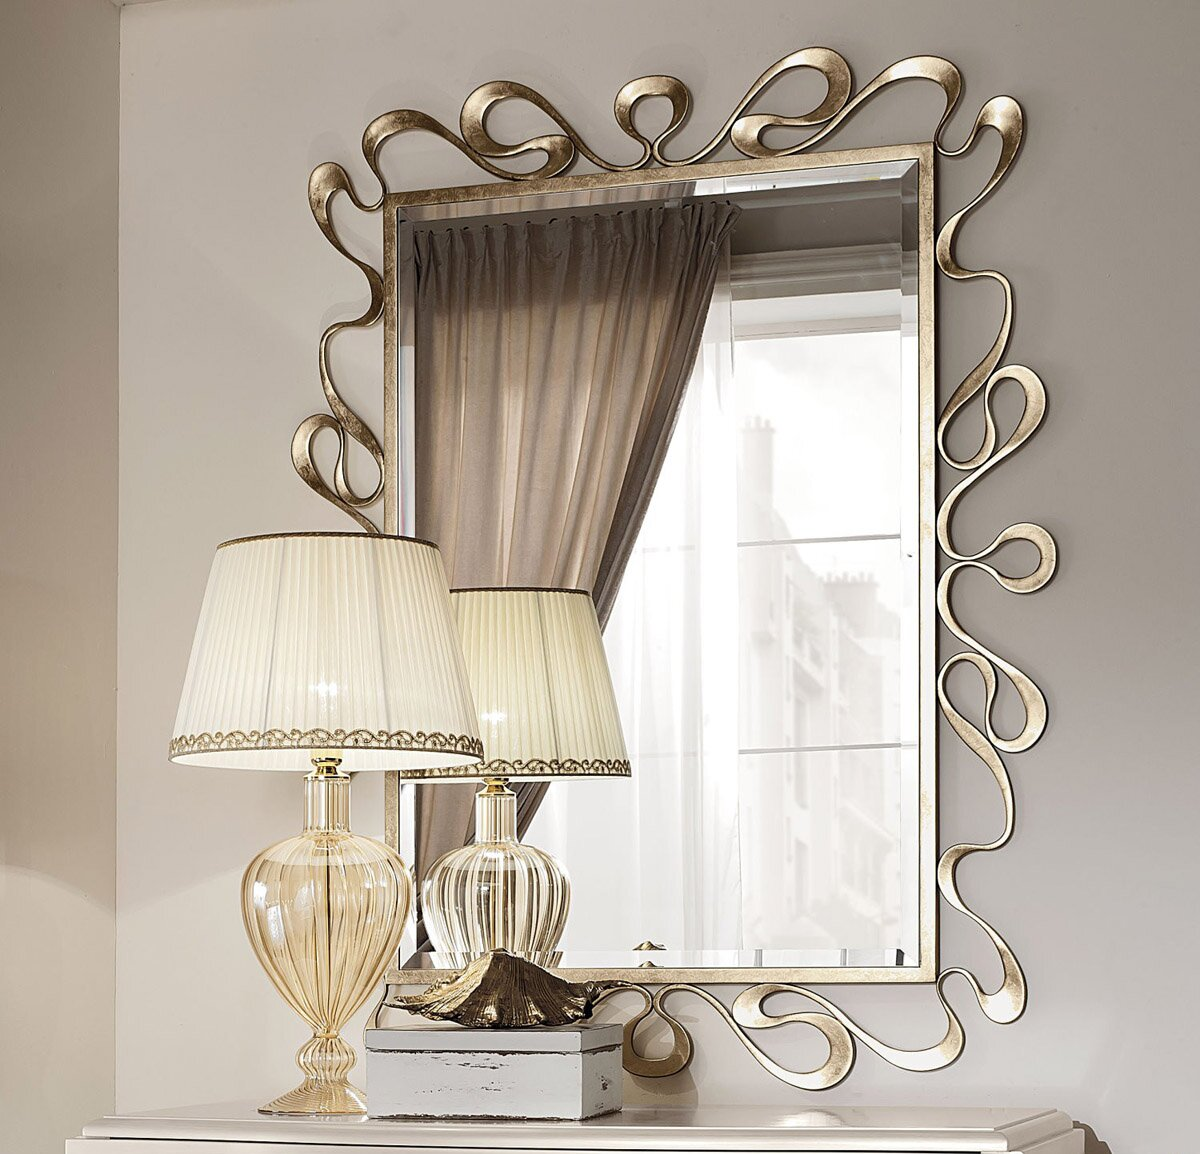 Decorative Bedroom Mirrors In 21 Example Pics Mostbeautifulthings